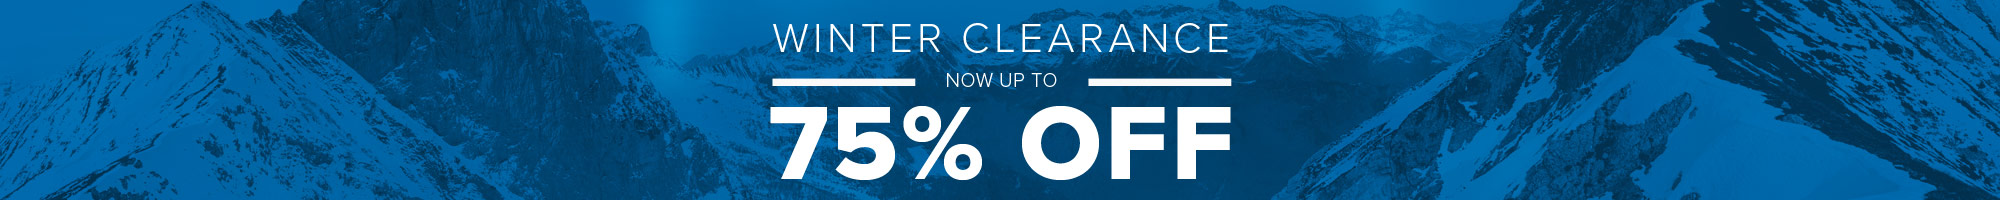 Winter Clearance Sale - Up To 75% Off